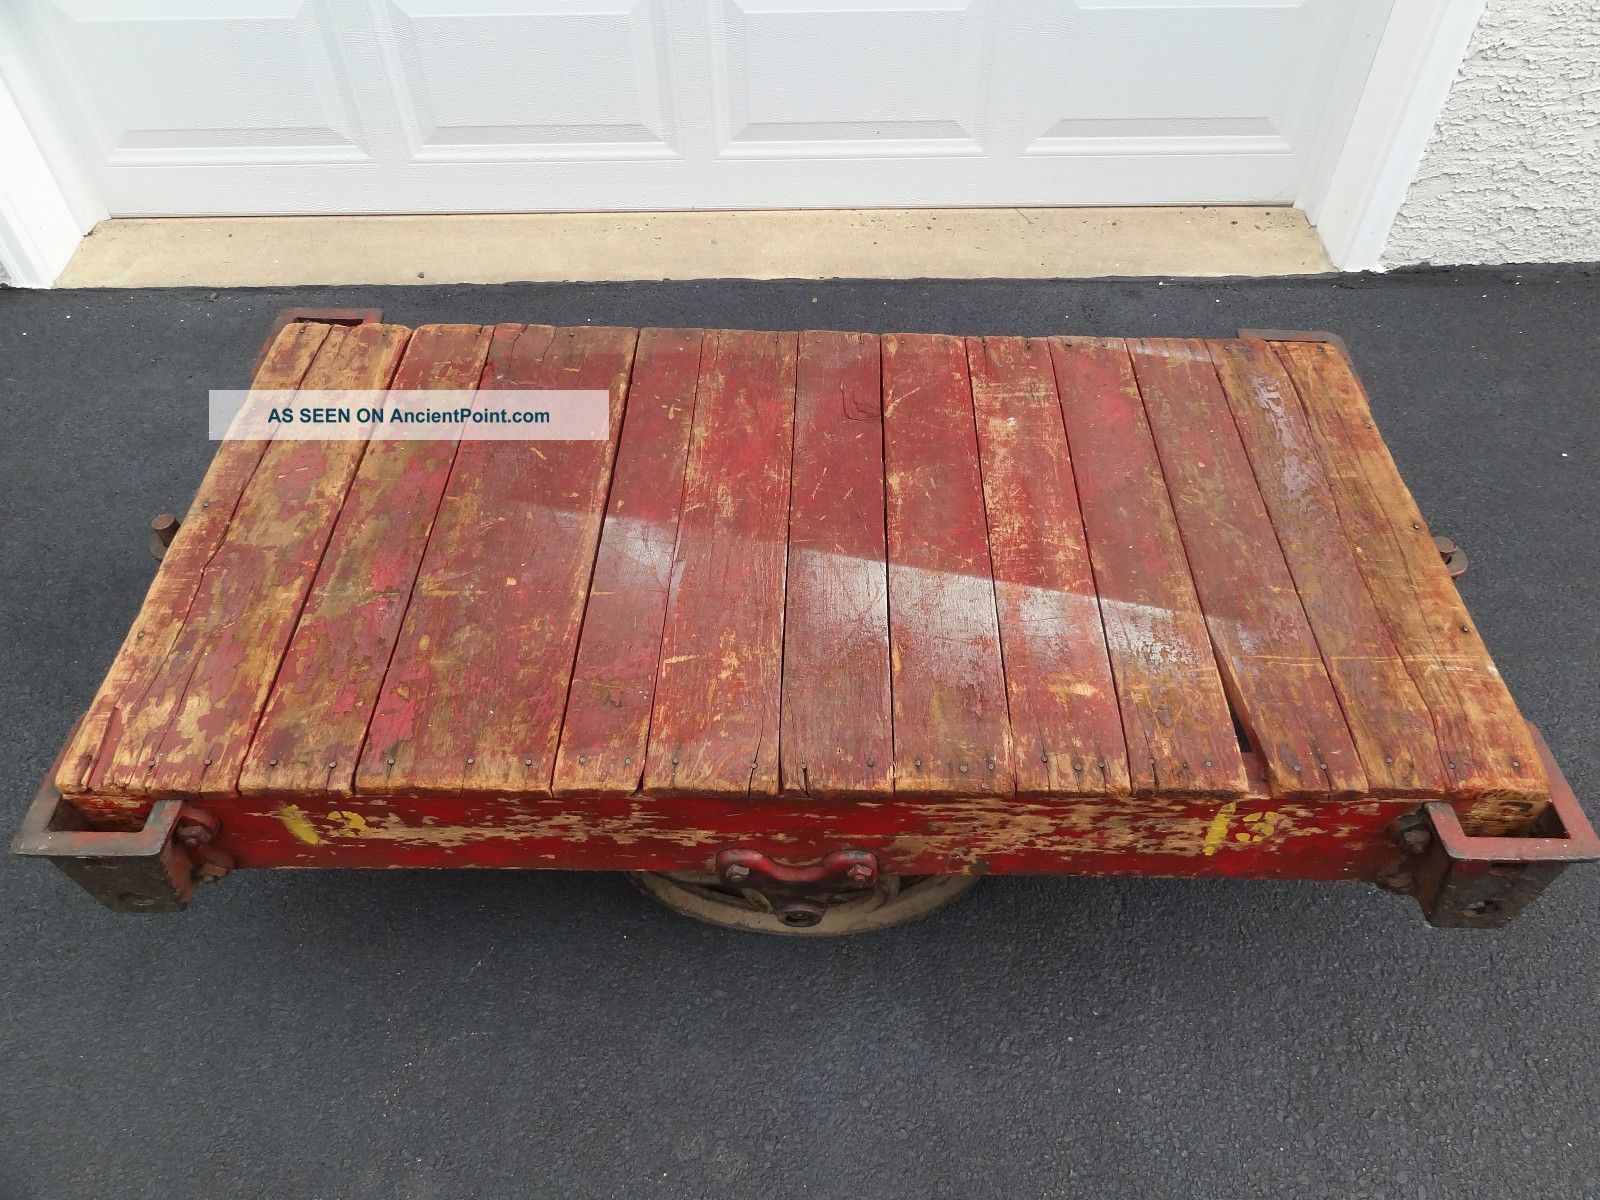 Antique Vintage Industrial Factory Railroad Cart Coffee Table Furniture 1900-1950 photo